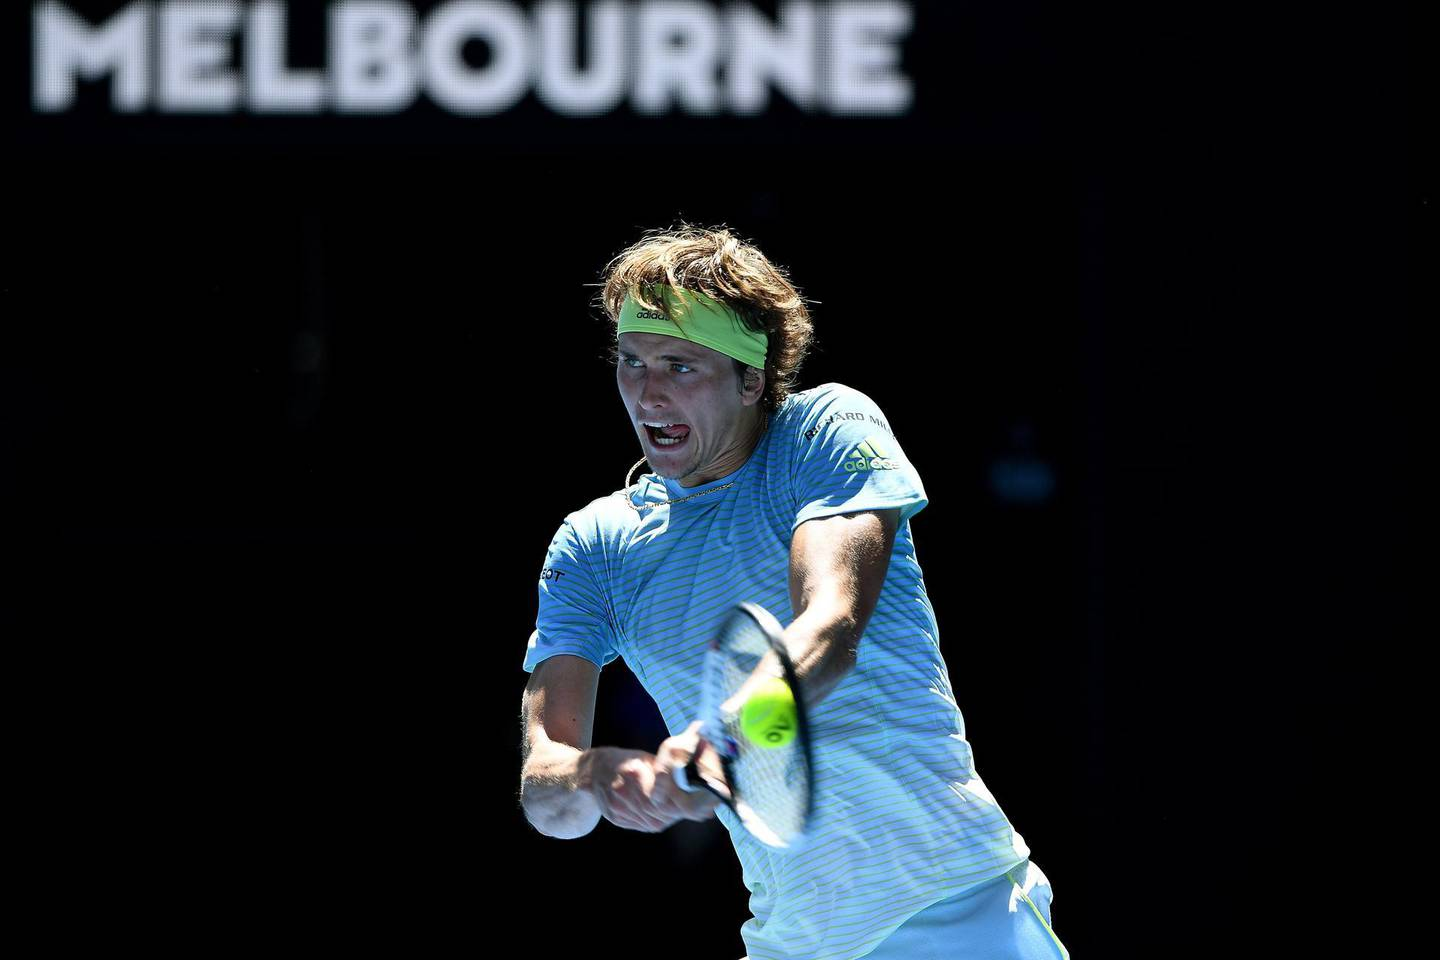 epa06442182 Alexander Zverev of Germany in action against Thomas Fabbiano of Italy during round one of the Australian Open tennis tournament in Melbourne, Victoria, Australia, 16 January 2018.  EPA/JOE CASTRO  AUSTRALIA AND NEW ZEALAND OUT